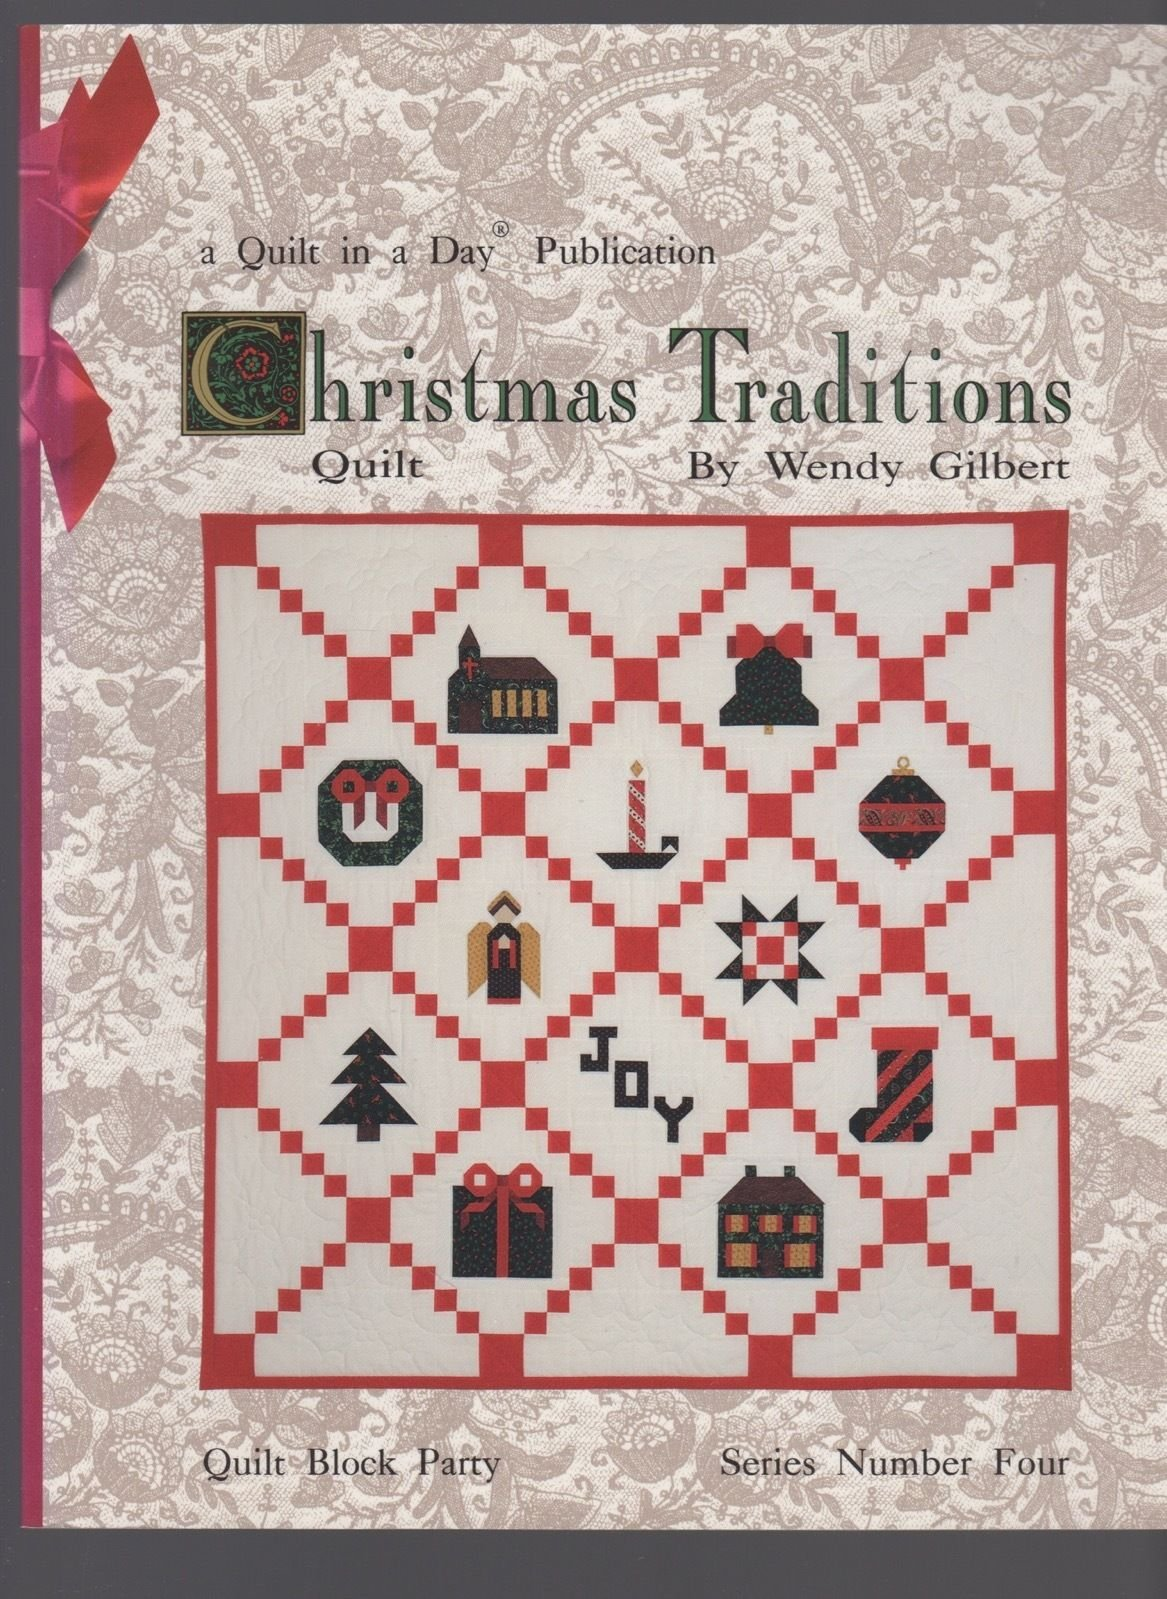 Christmas Traditions - Quilt Block Party Series #4 - Quilt In A Day